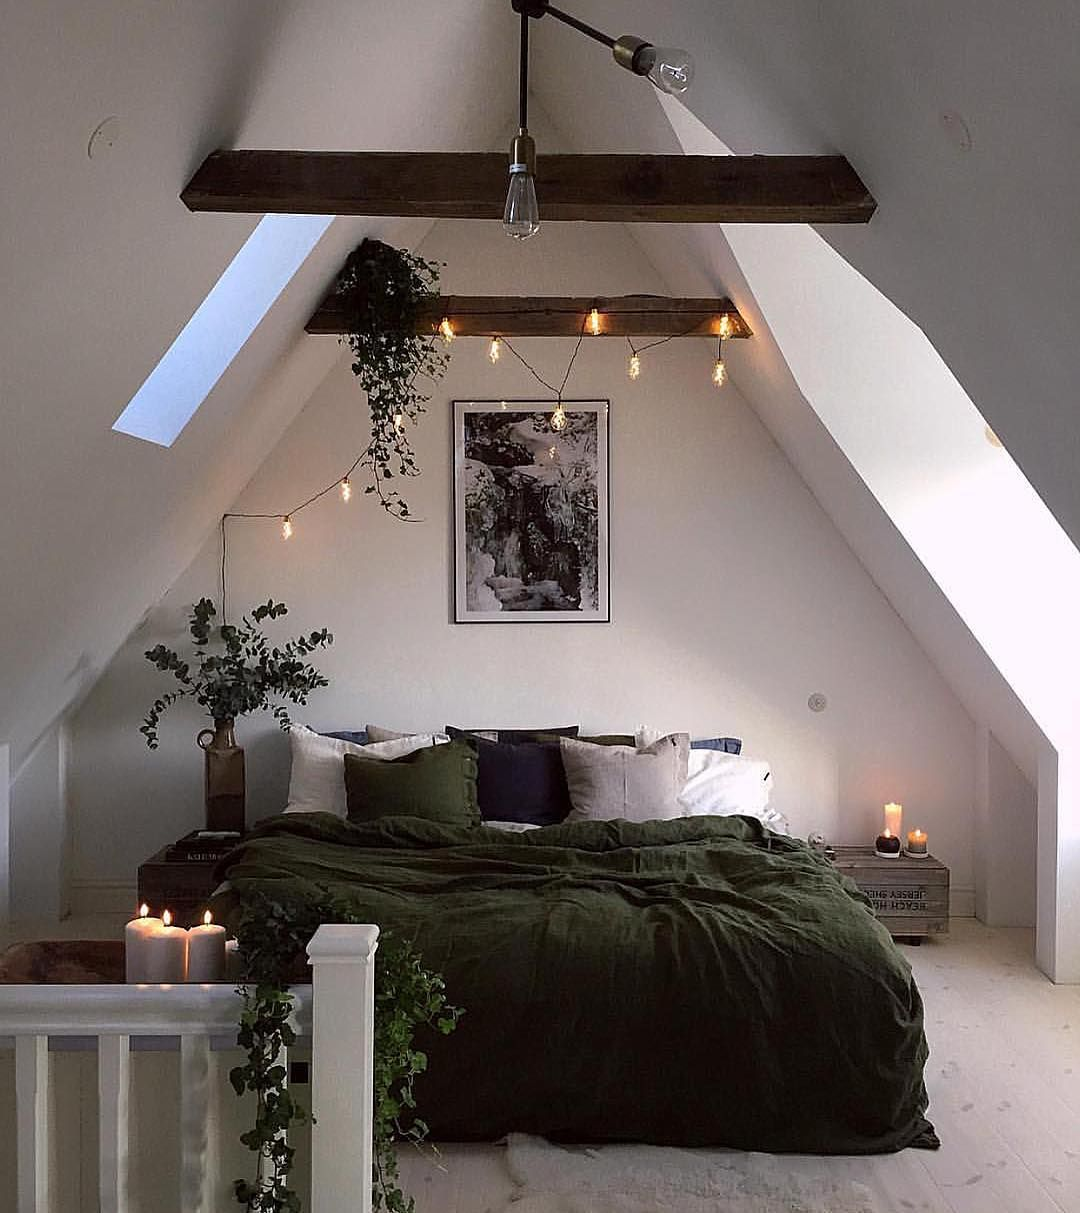 u201c via 25 amazing attic bedrooms that you would absolutely enjoy sleeping in